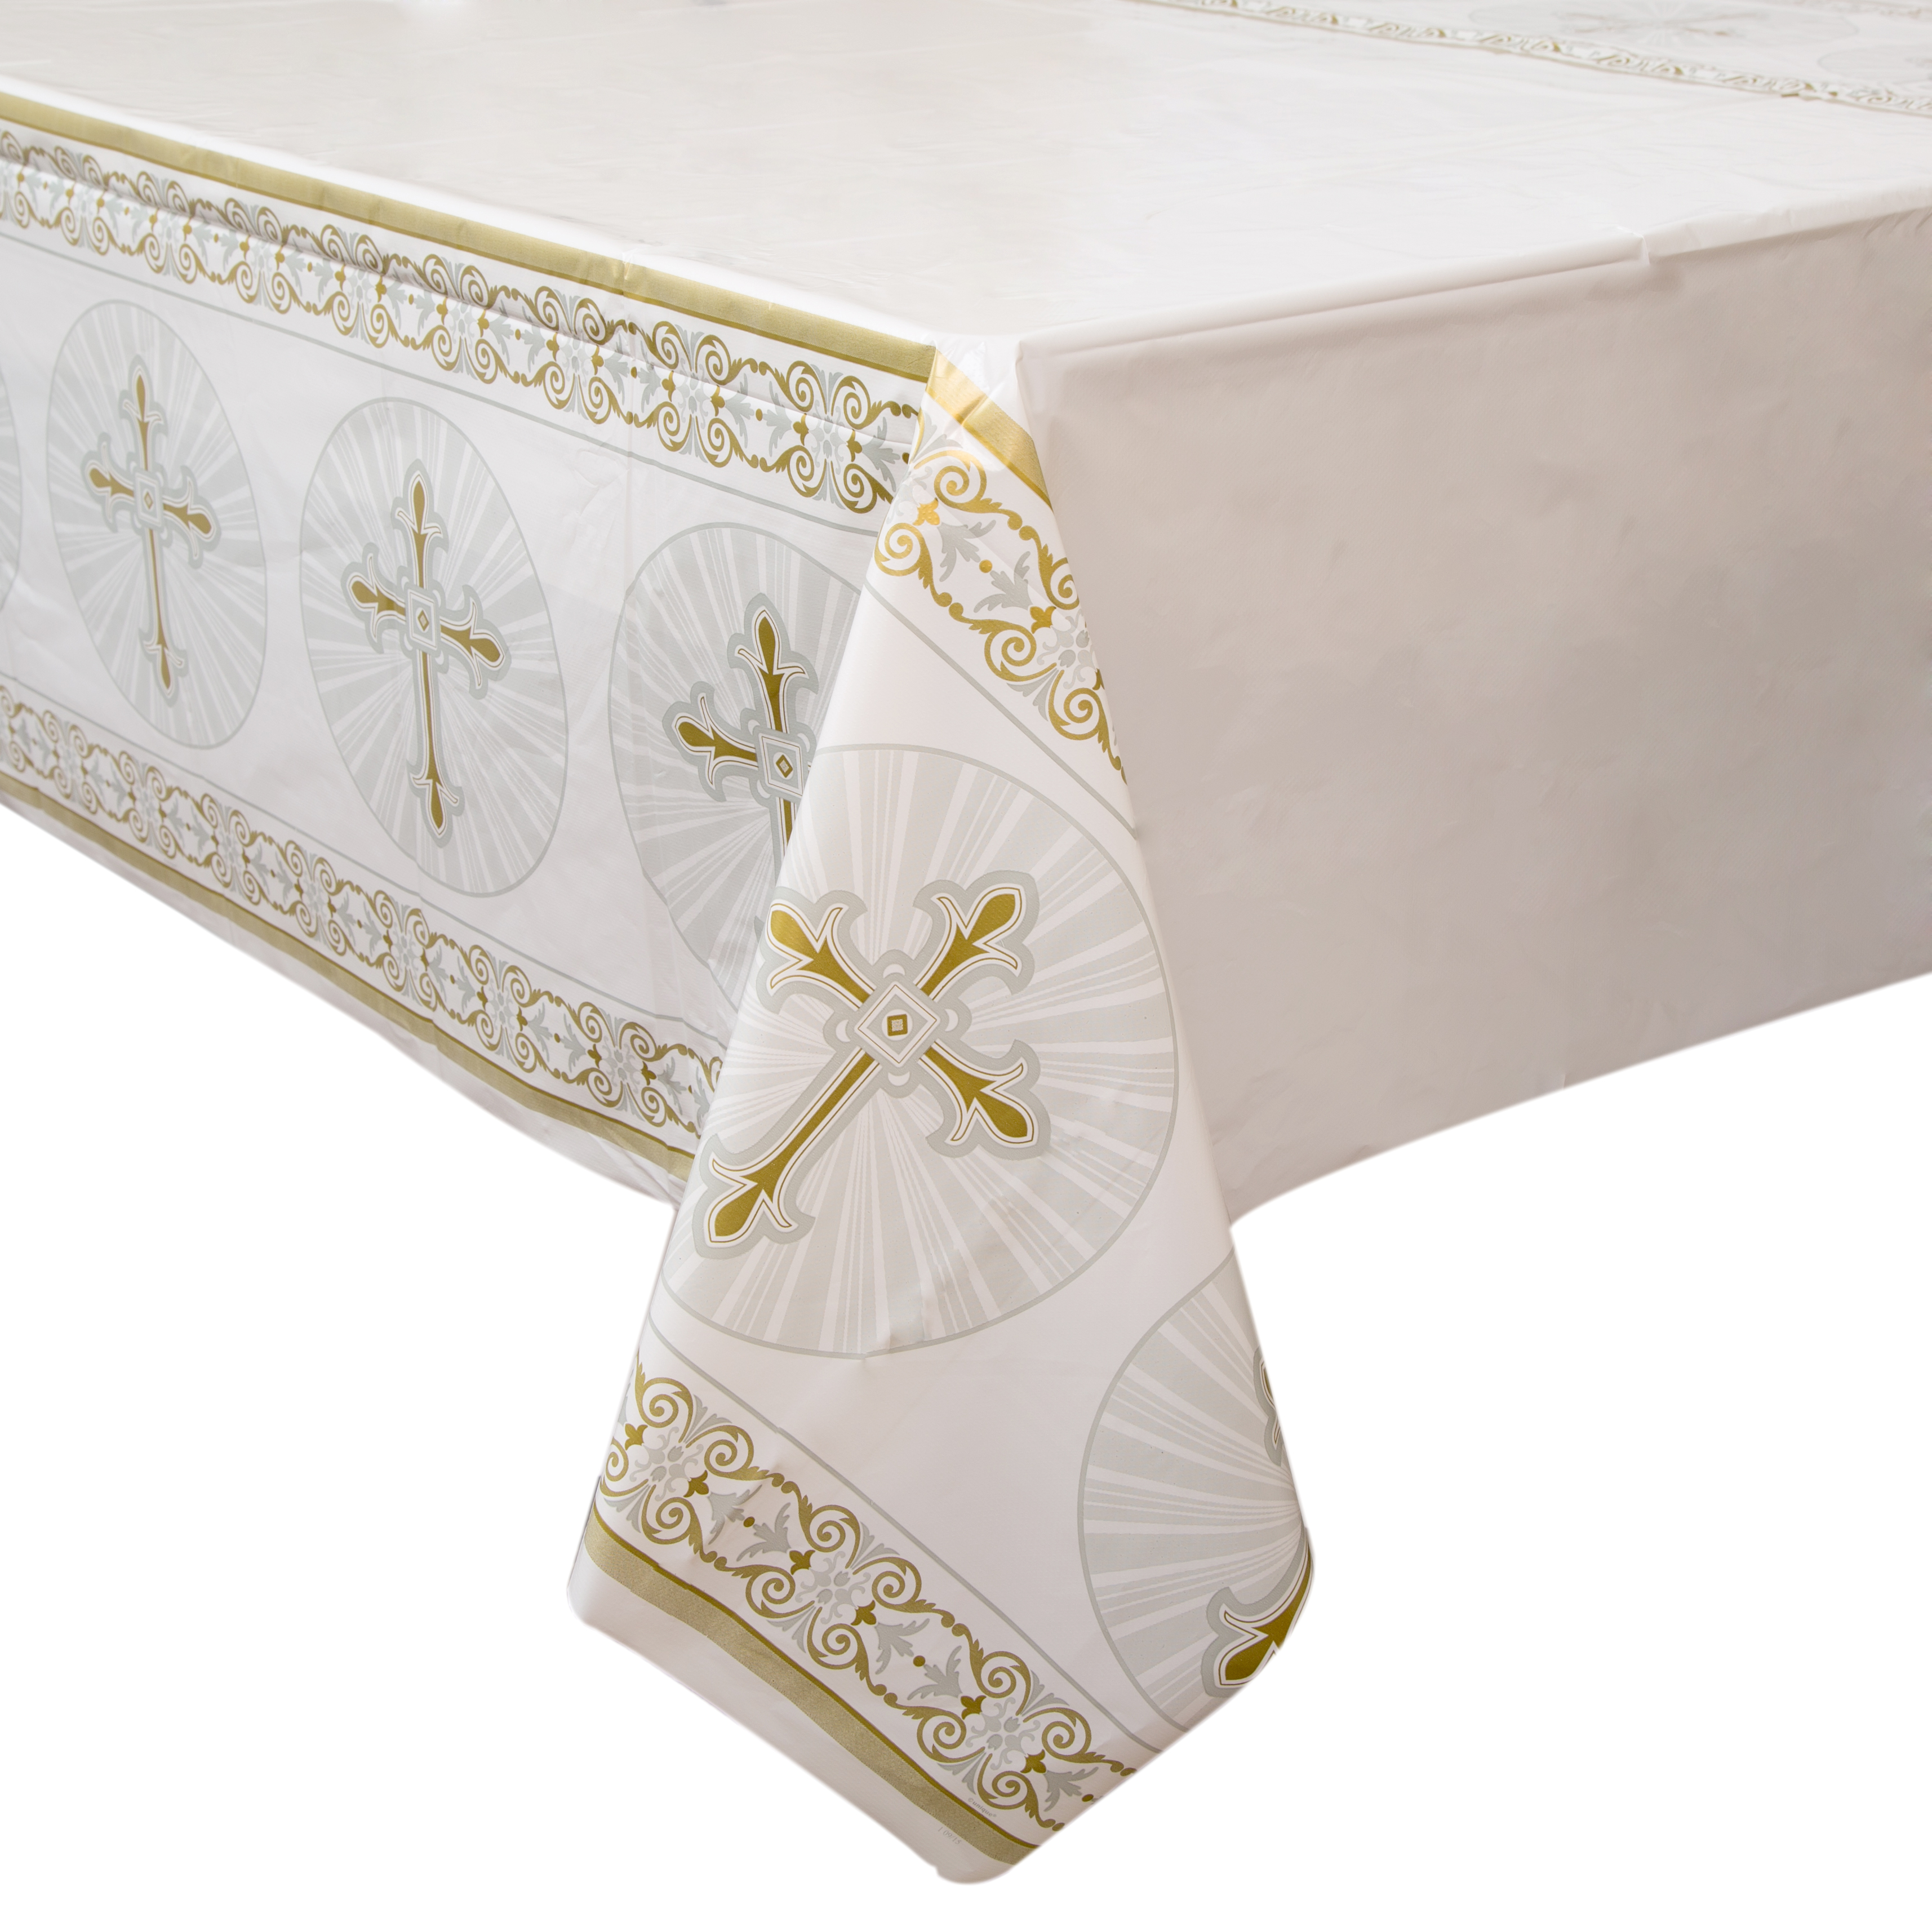 Radiant Cross Religious Plastic Party Tablecloth, 84 x 54in